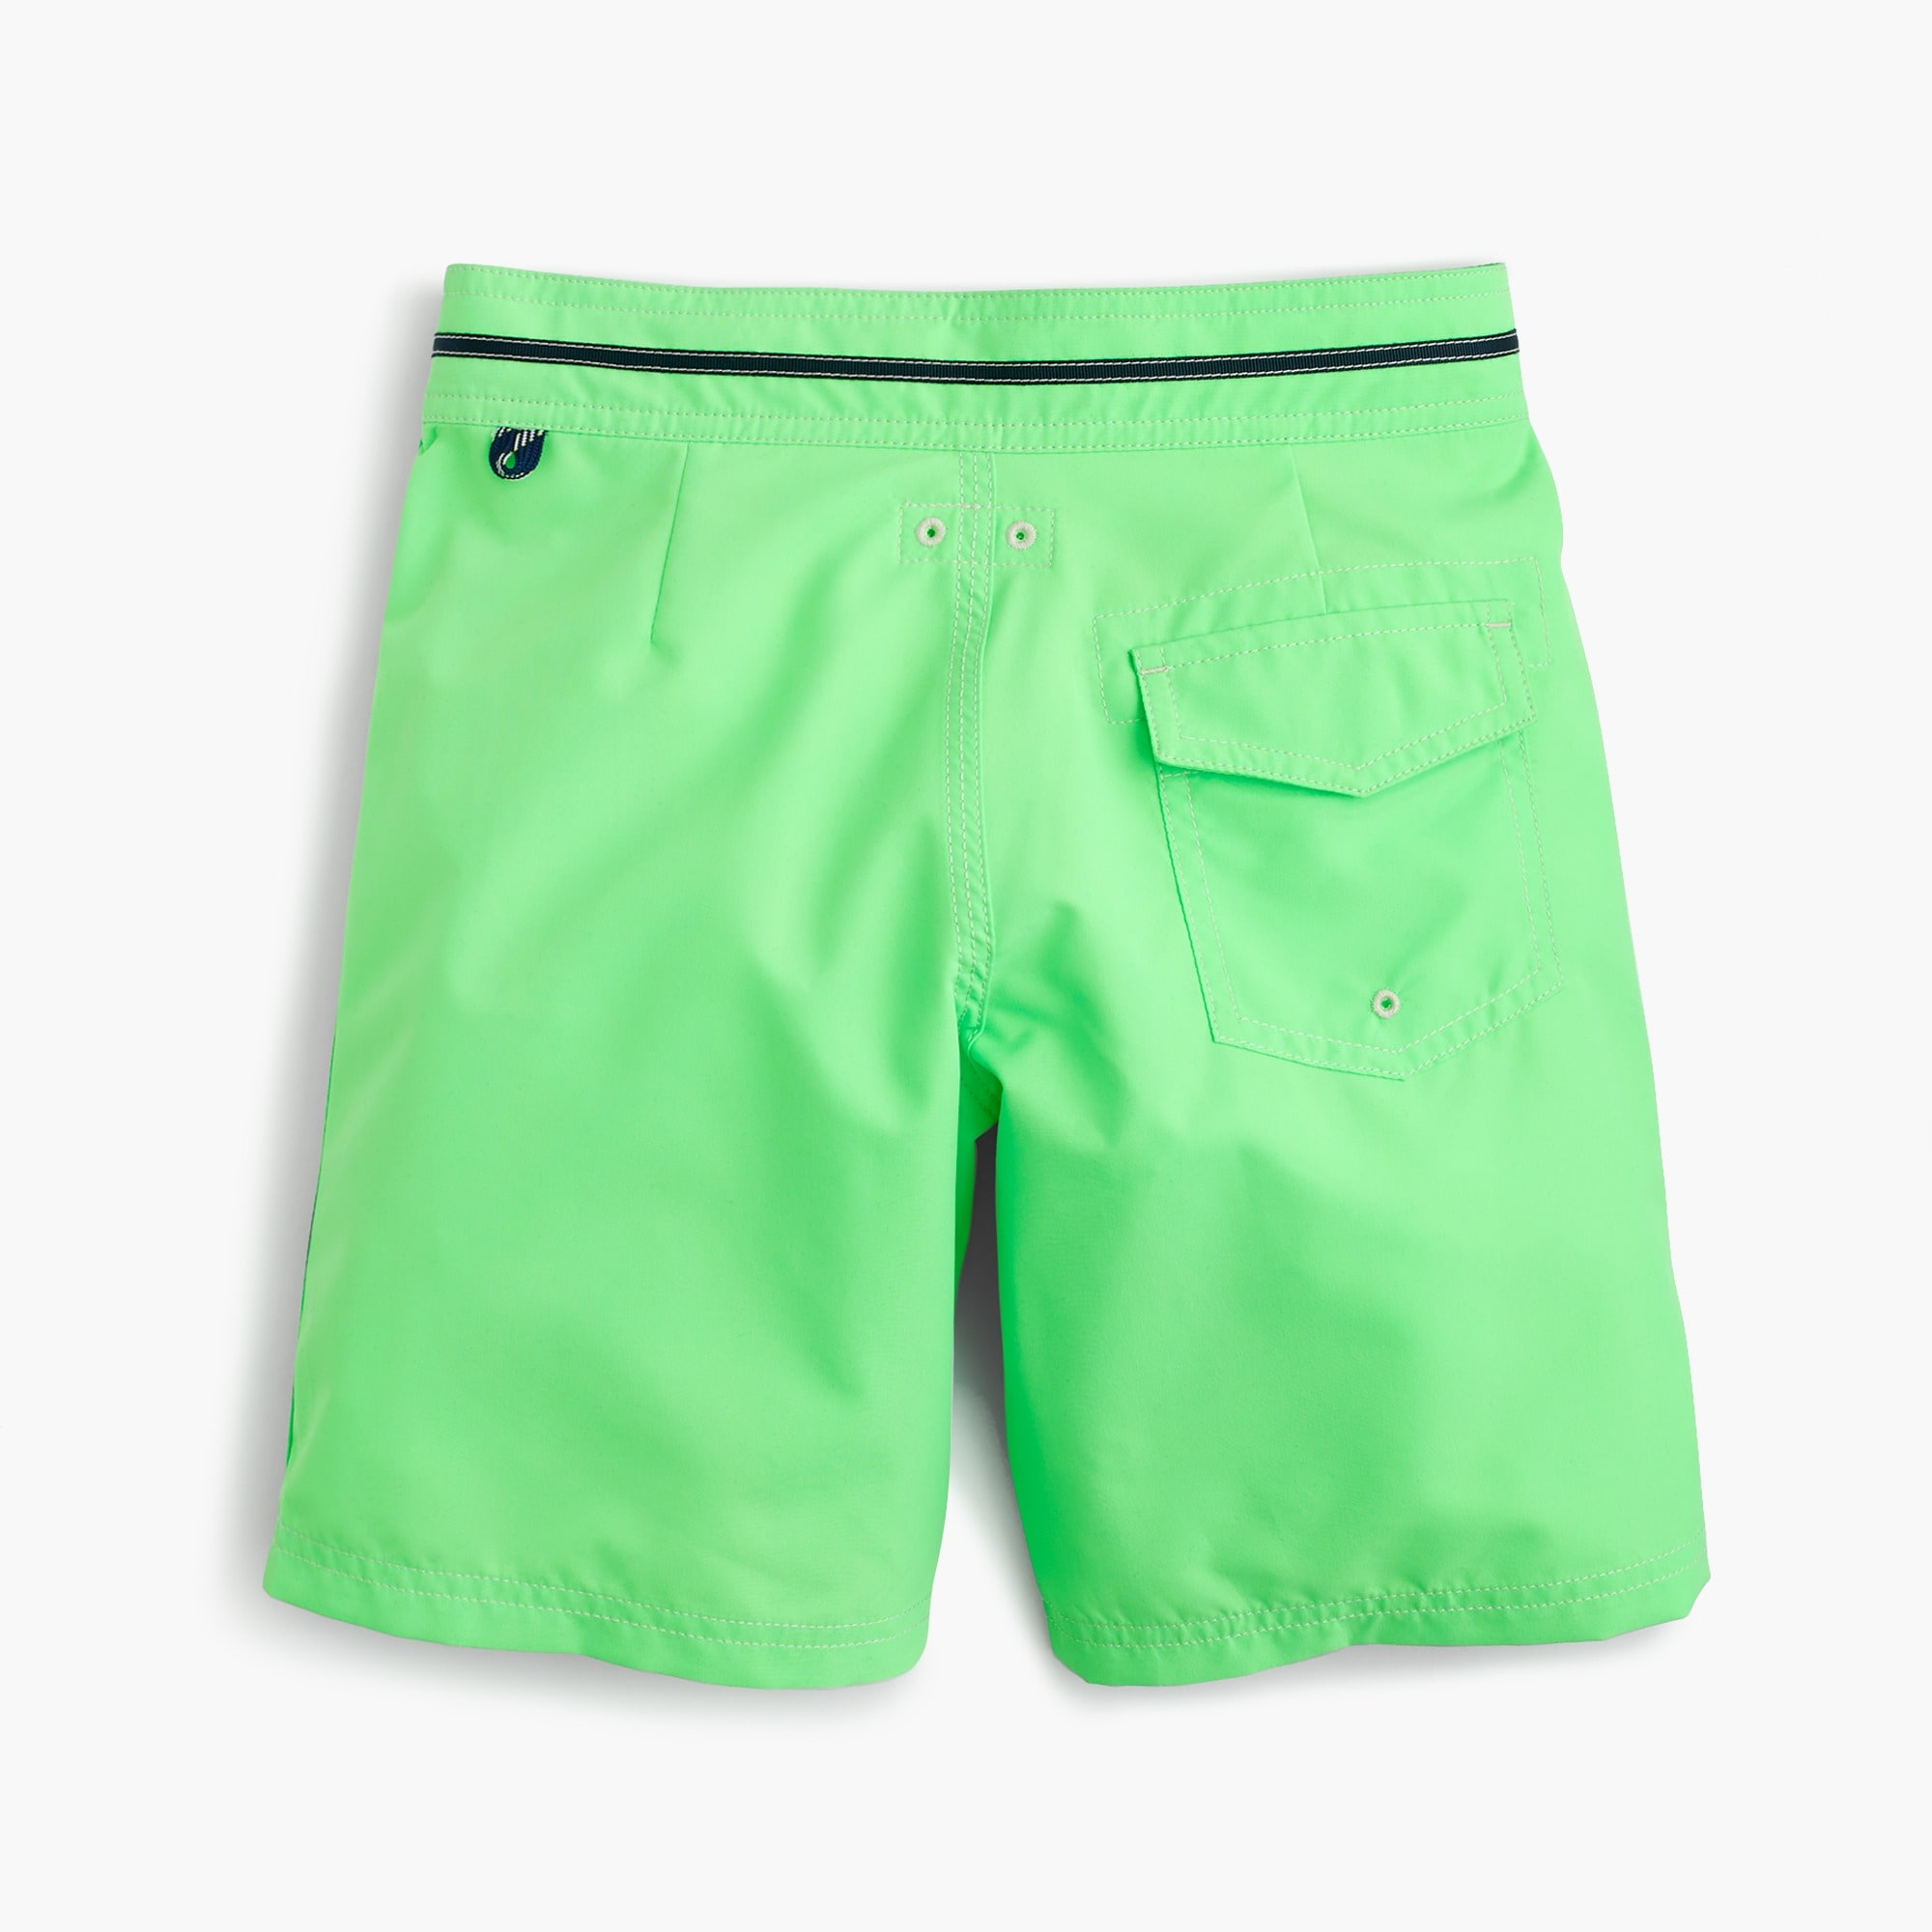 Image 1 for Boys' snap-front board short in neon